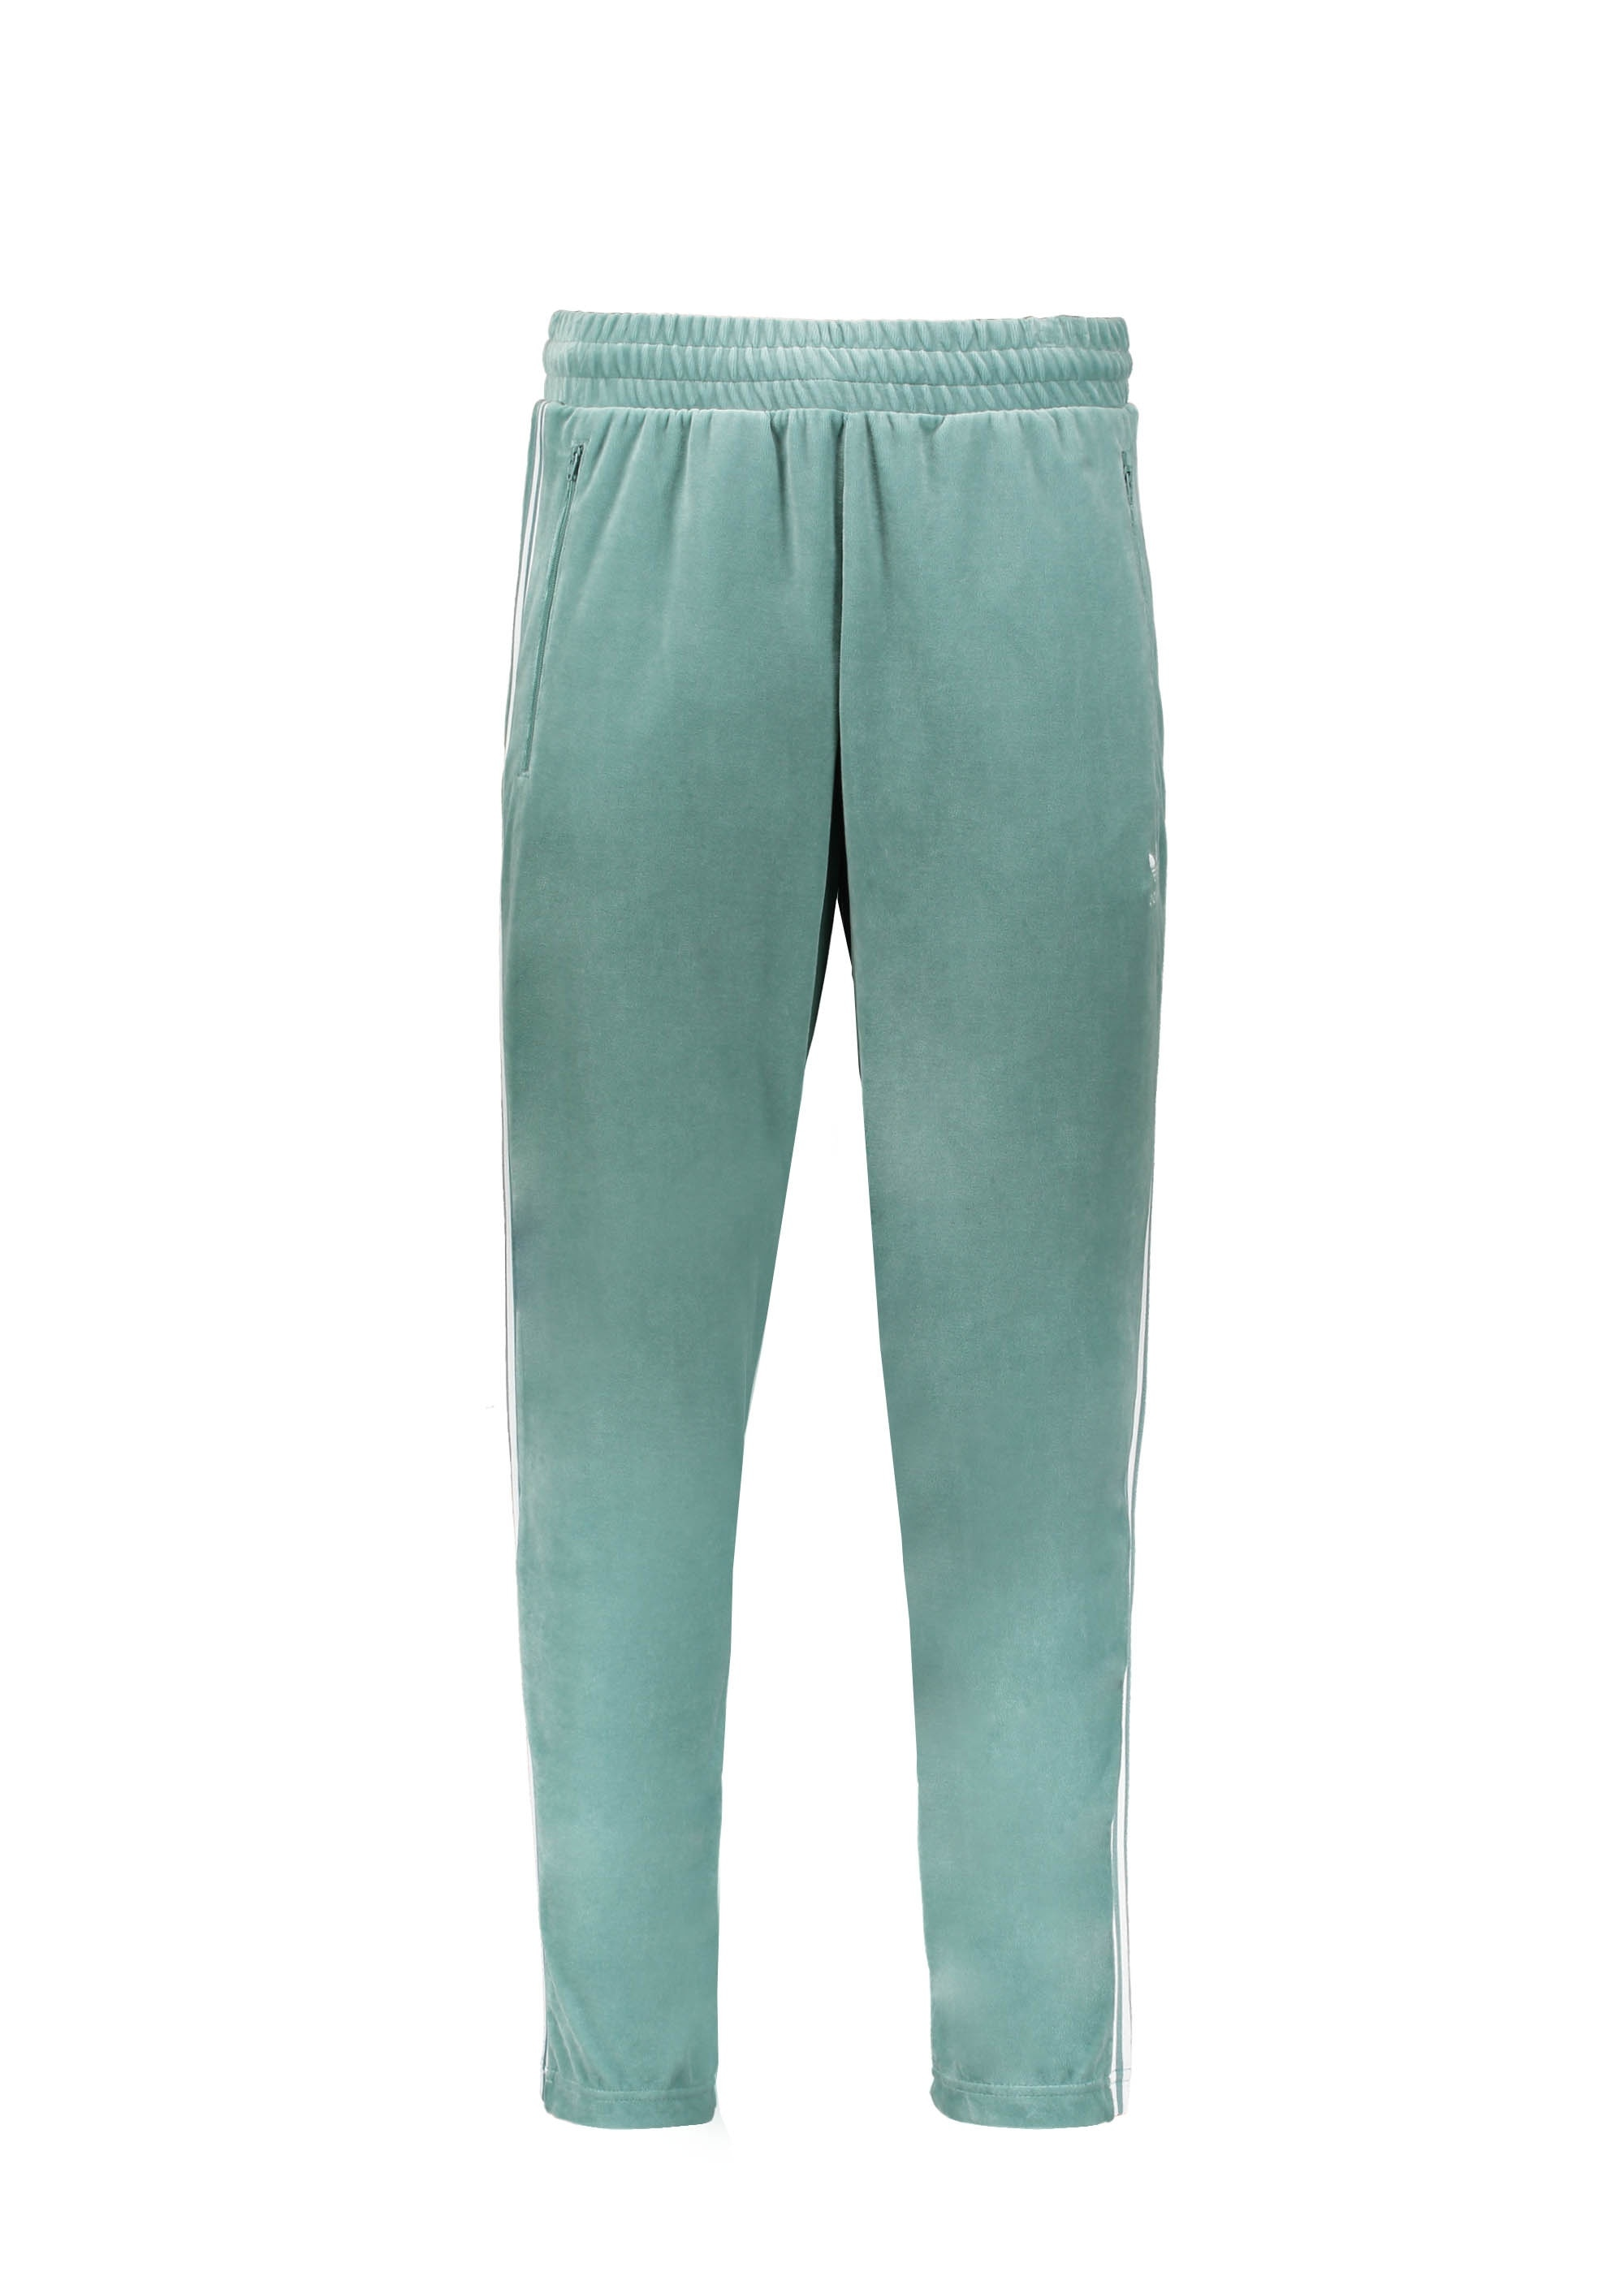 adidas Originals Apparel Cozy Pant Green White